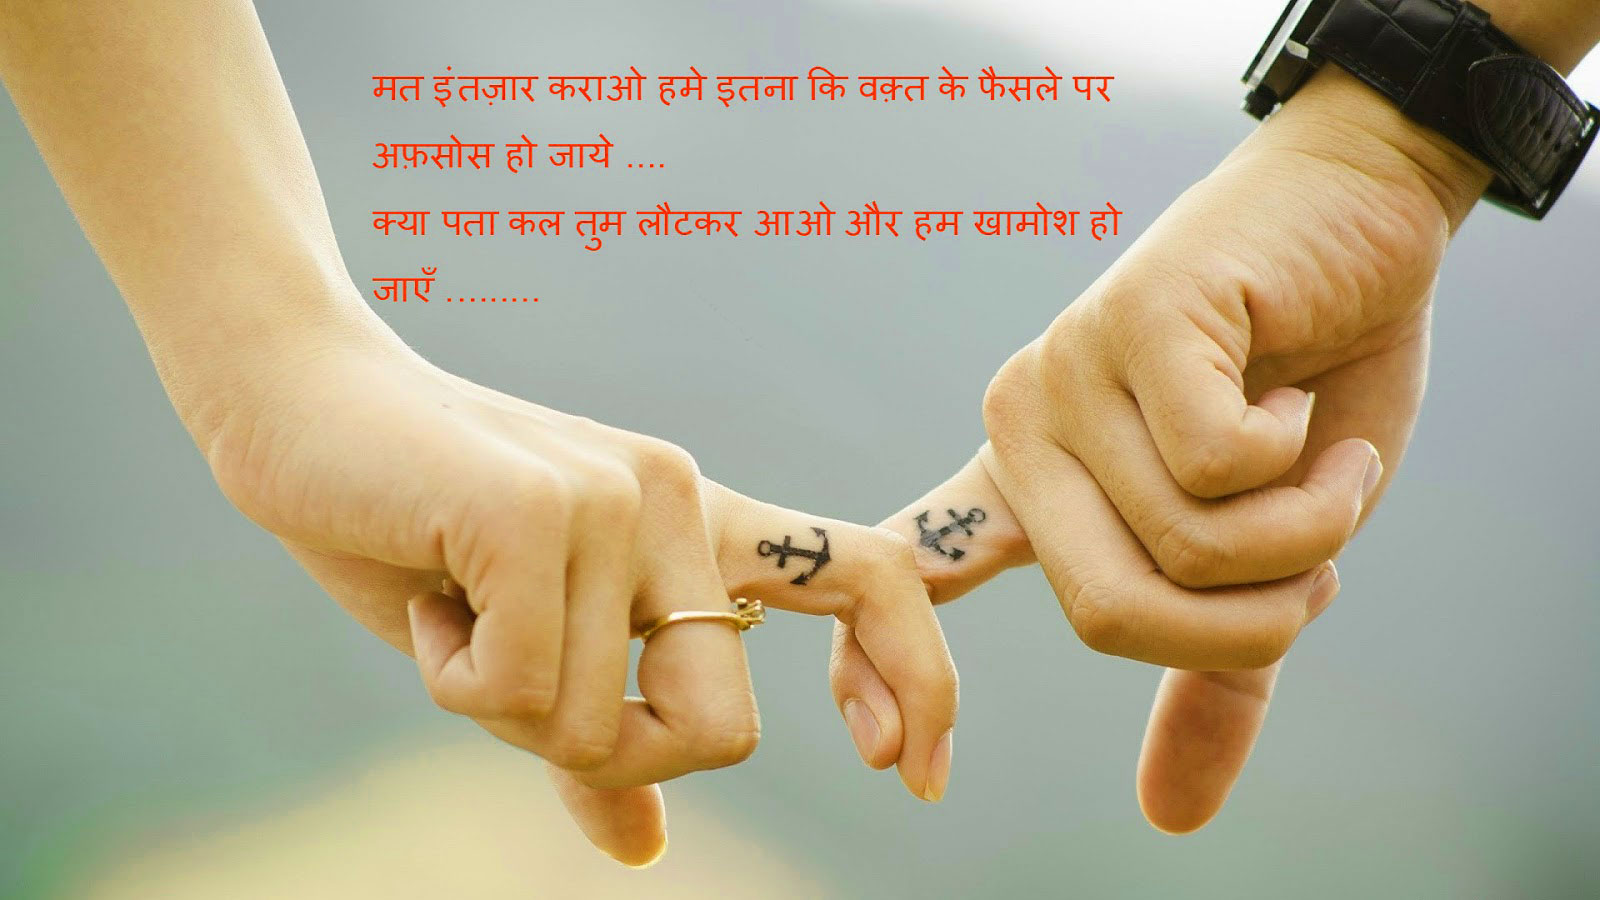 True Hindi Love Shayari Images Wallpaper Pics Download